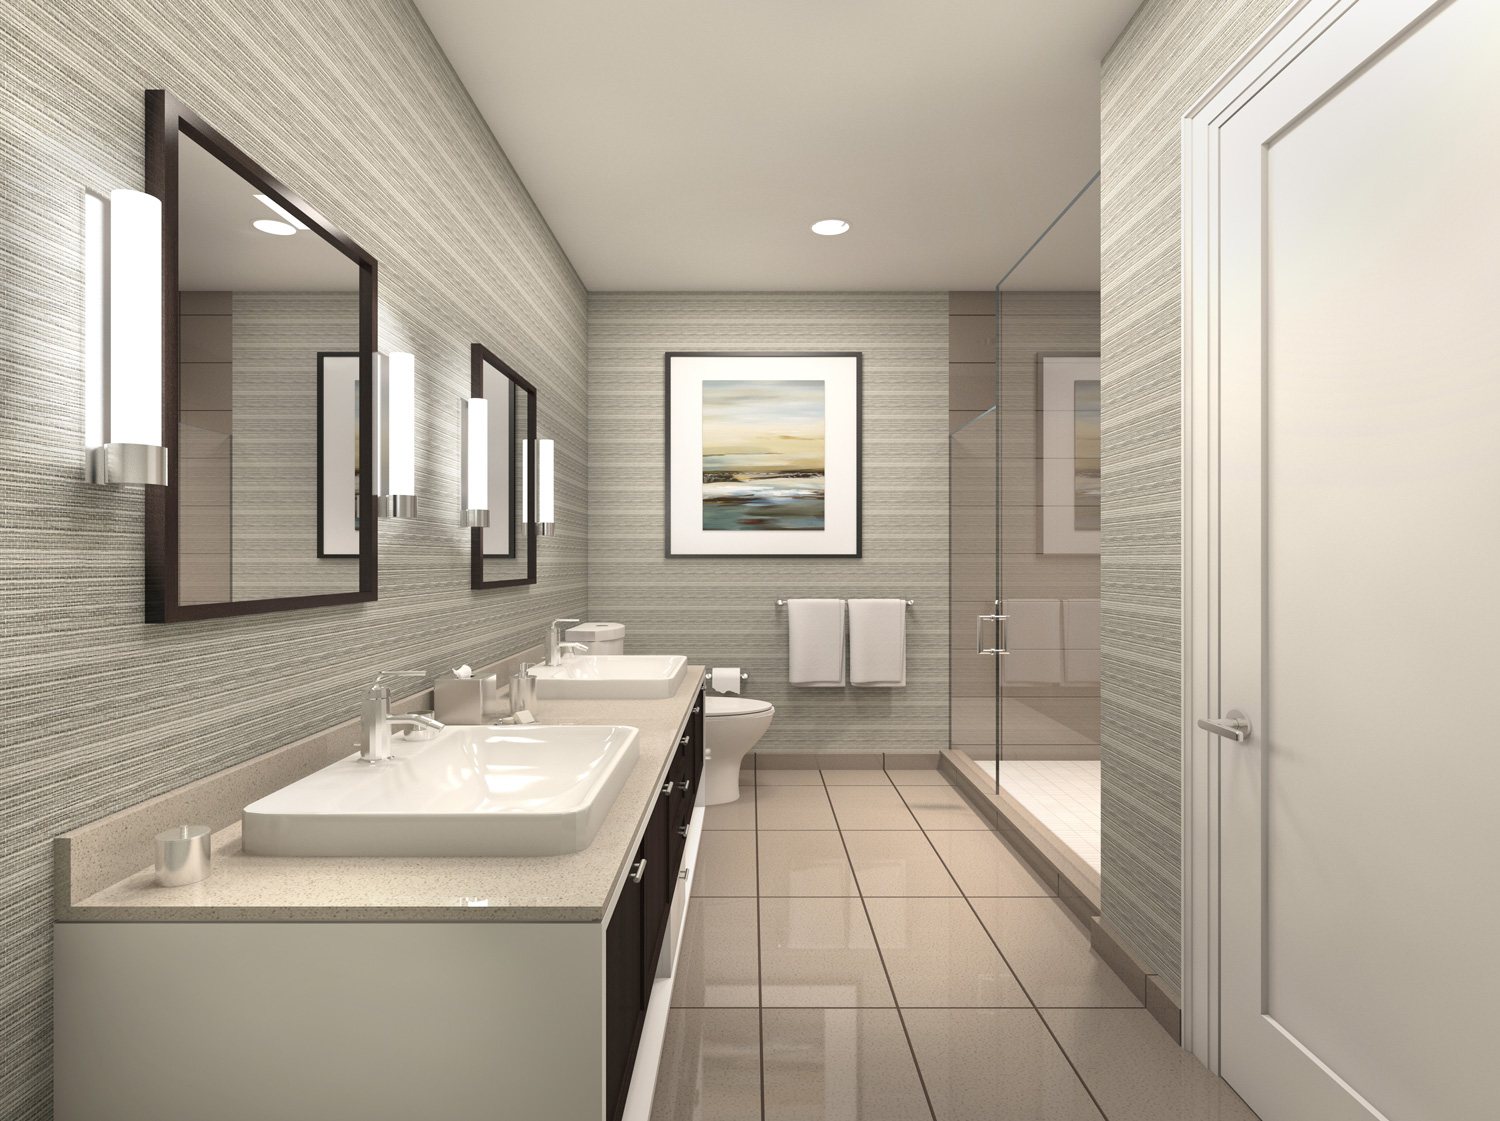 Model Suite Master Ensuite with Double Vanity